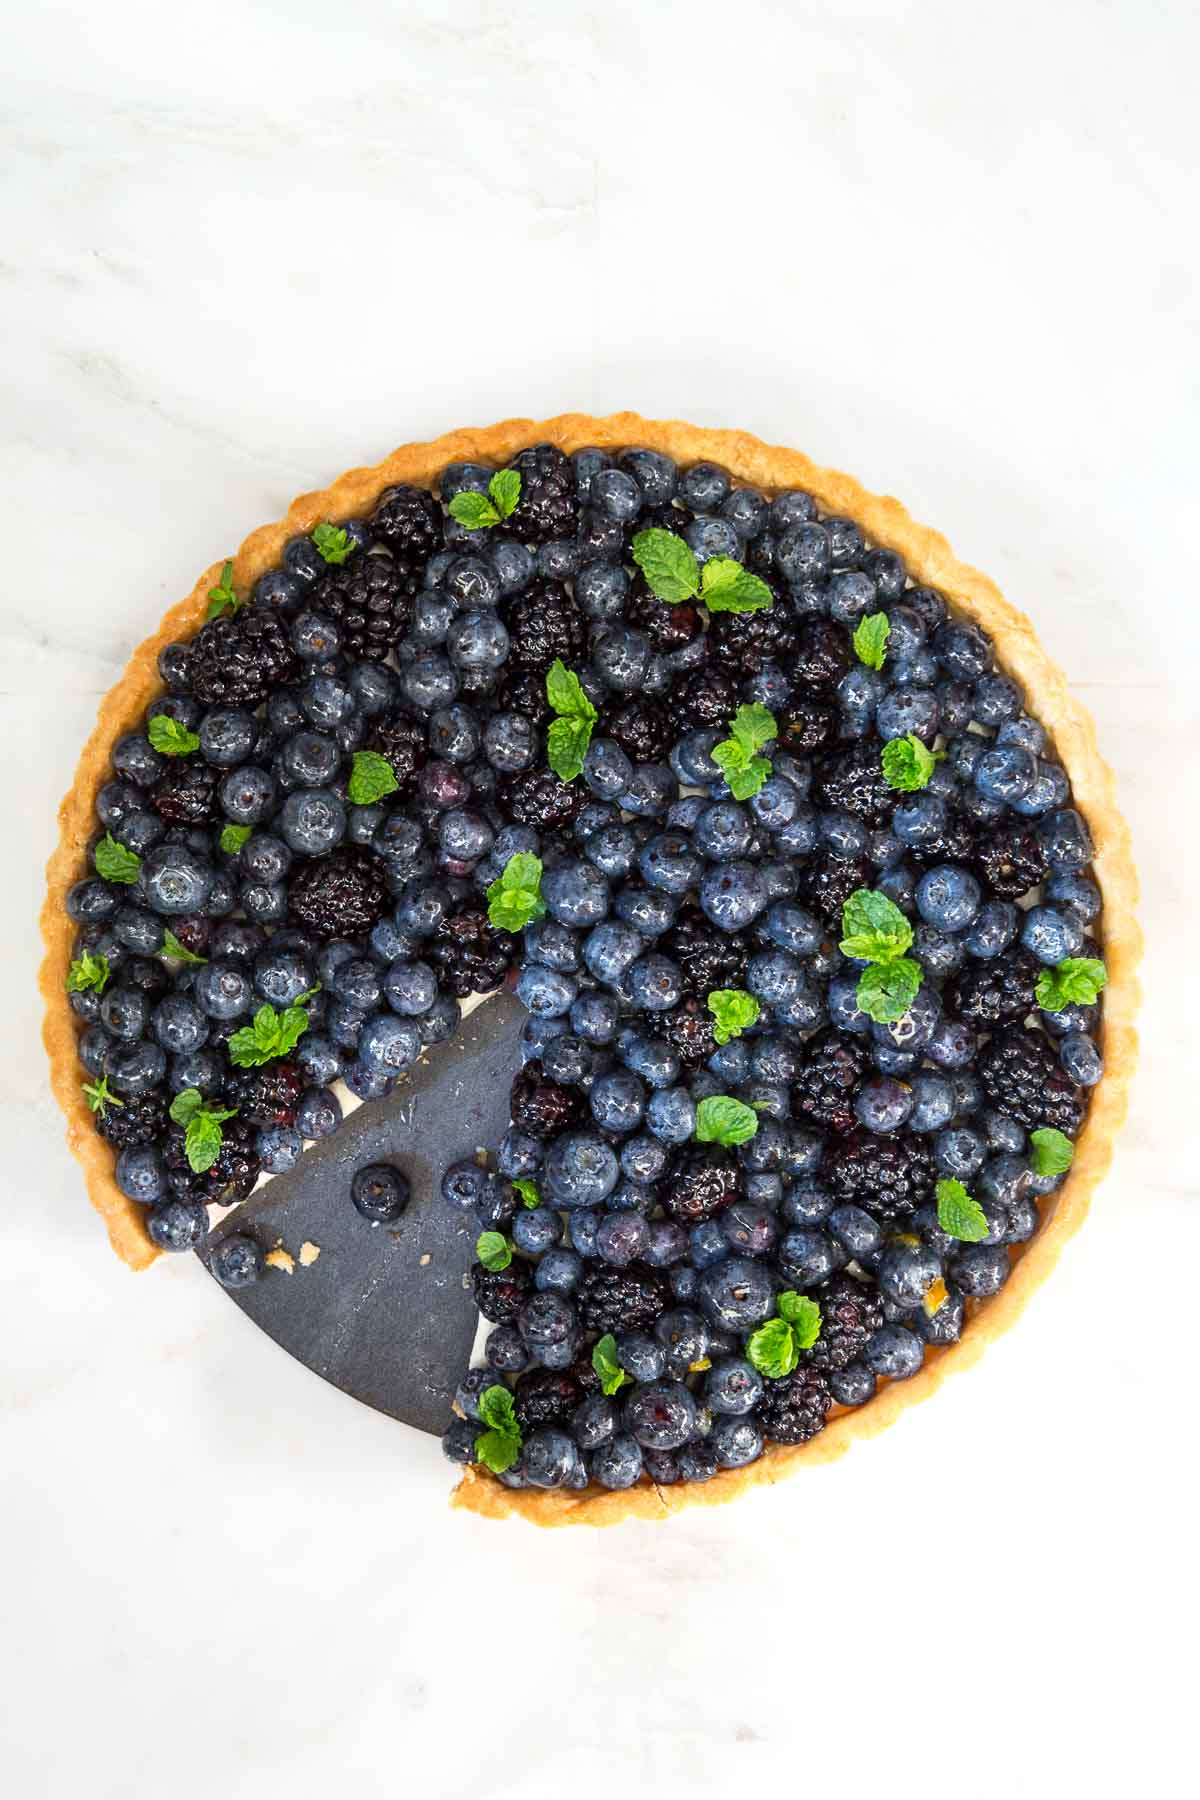 Overhead photo of a Lemon Cheesecake with Glazed Berries.